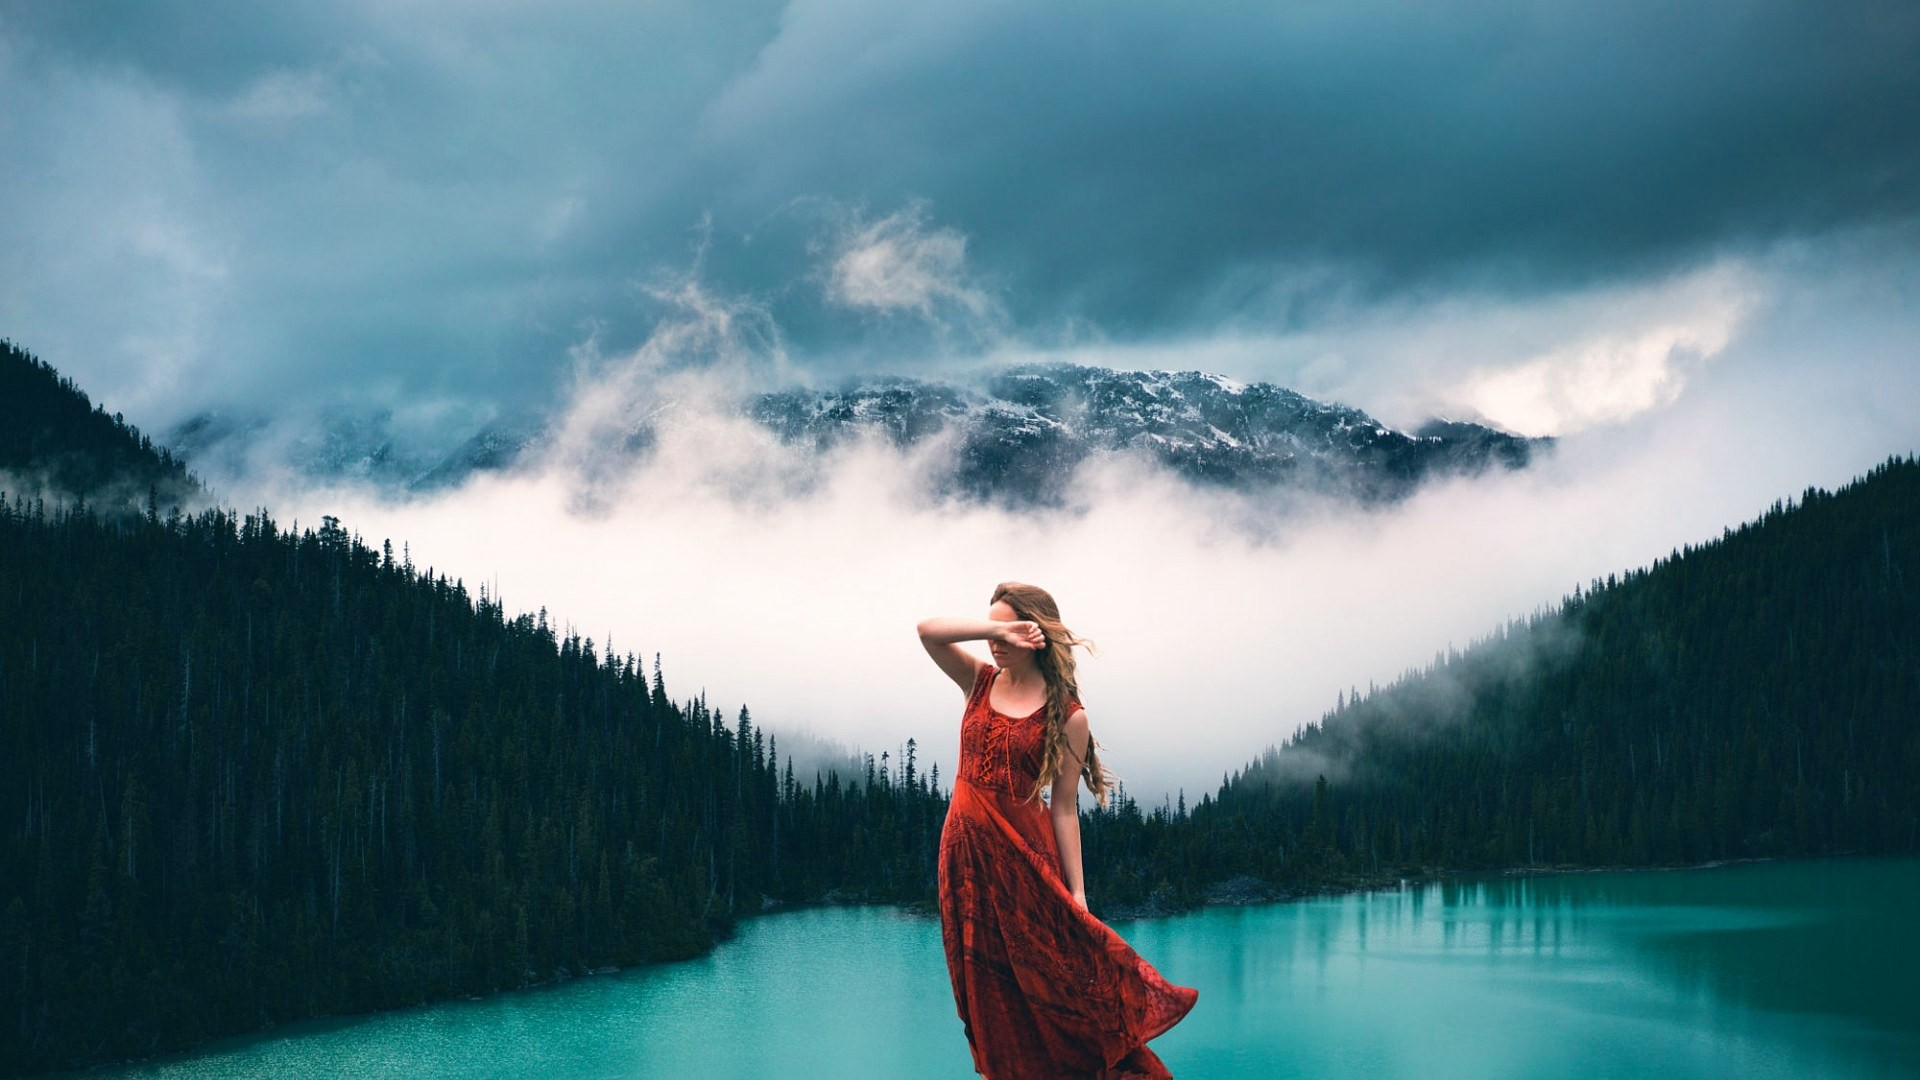 Wallpaper Sunlight Forest Mountains Women Outdoors